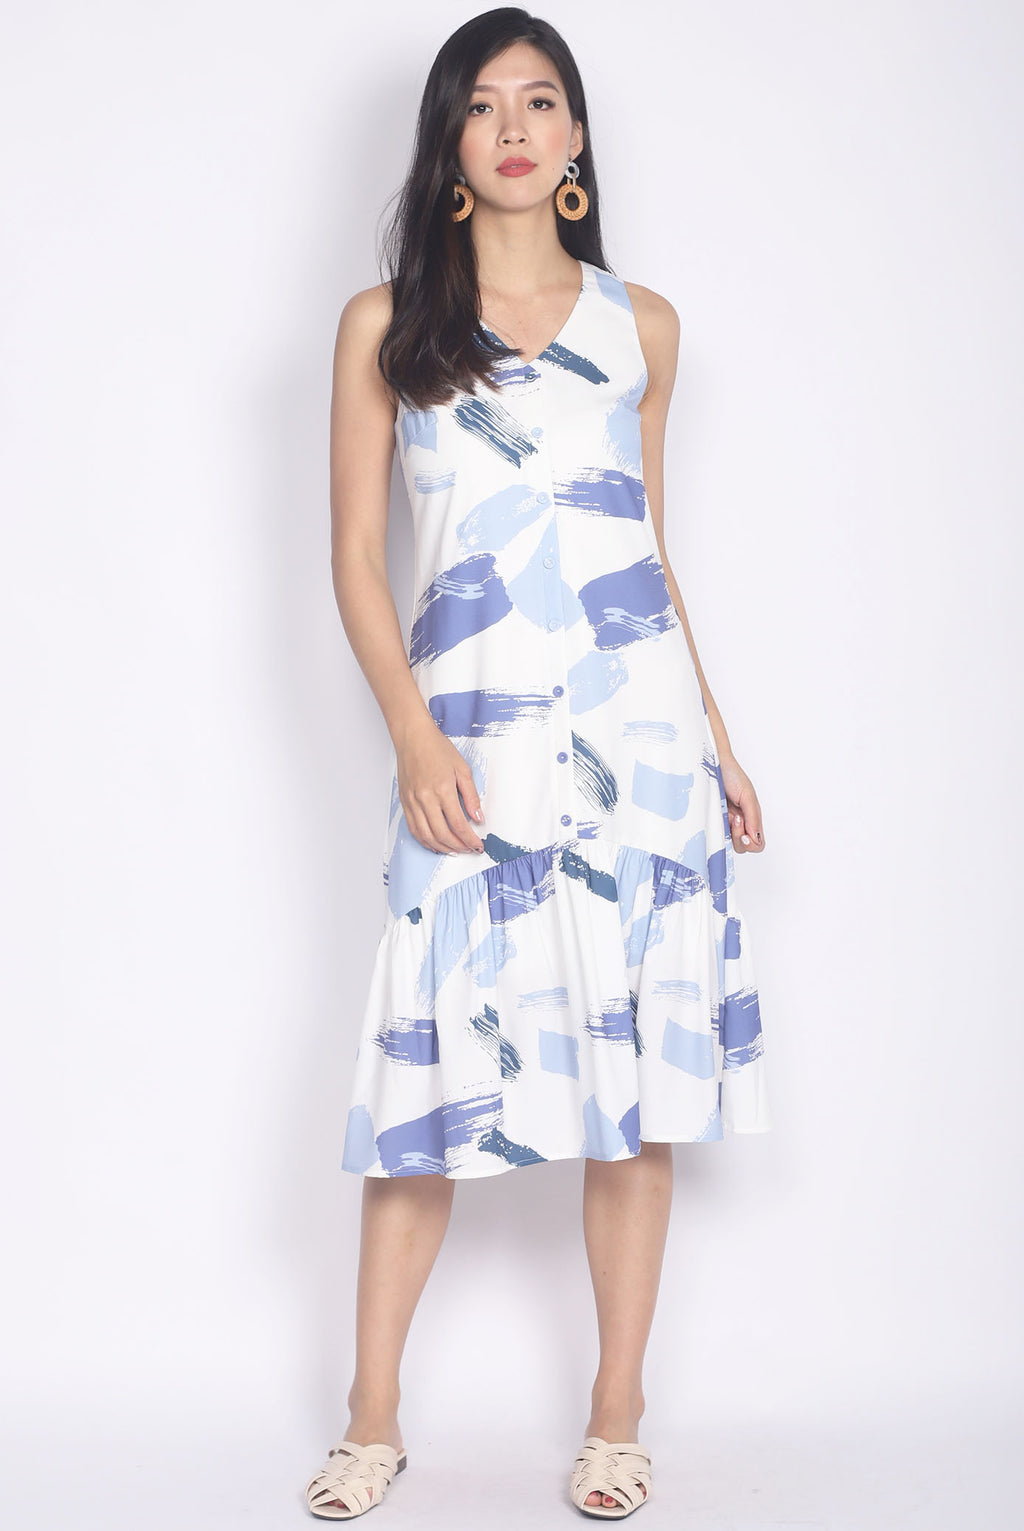 Isabeau Brush Abstract Buttons Midi Dress In White